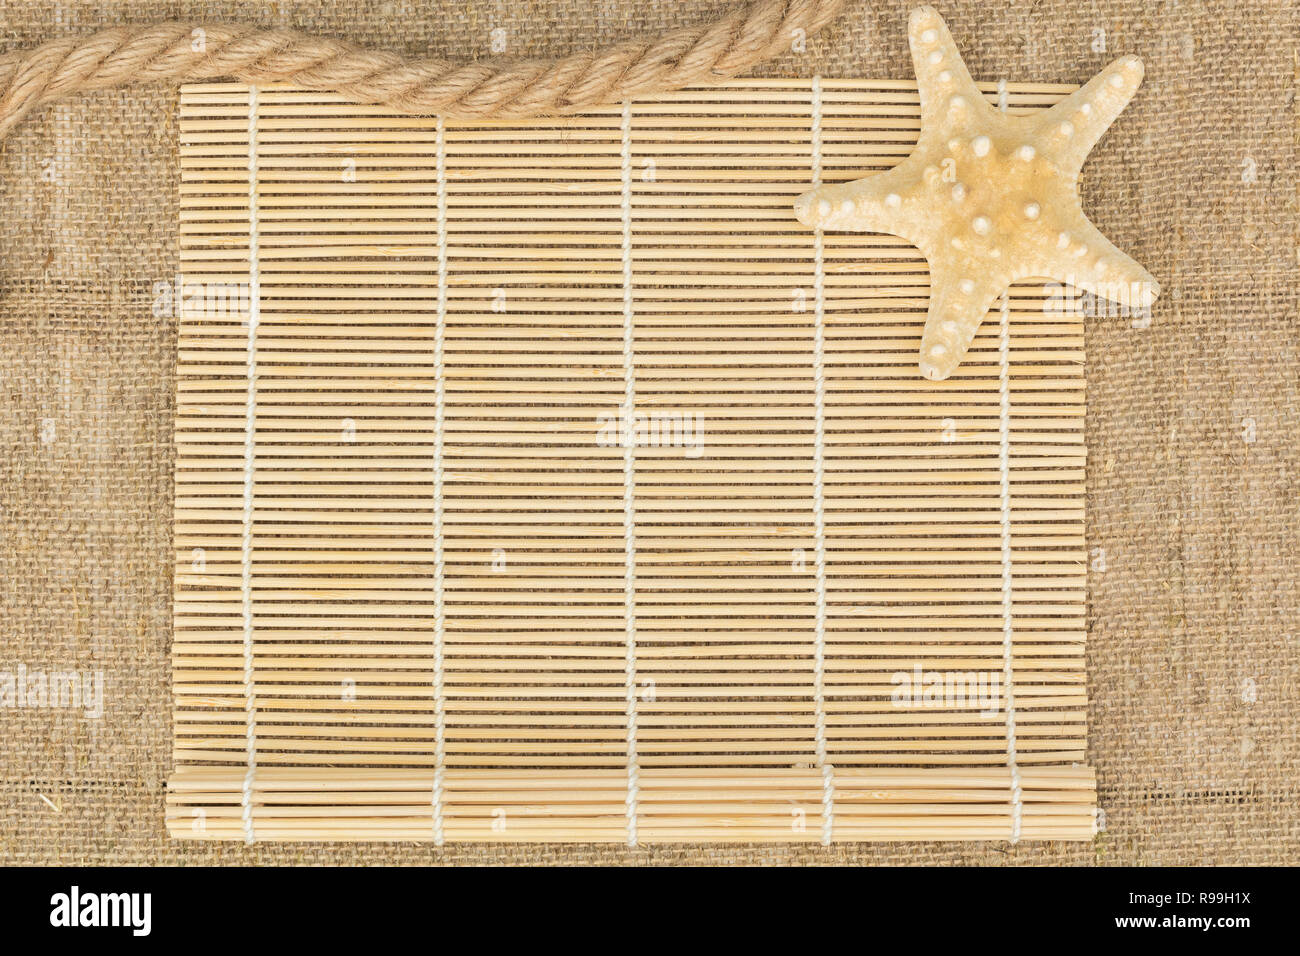 starfish and rope lying on a sackcloth - Stock Image